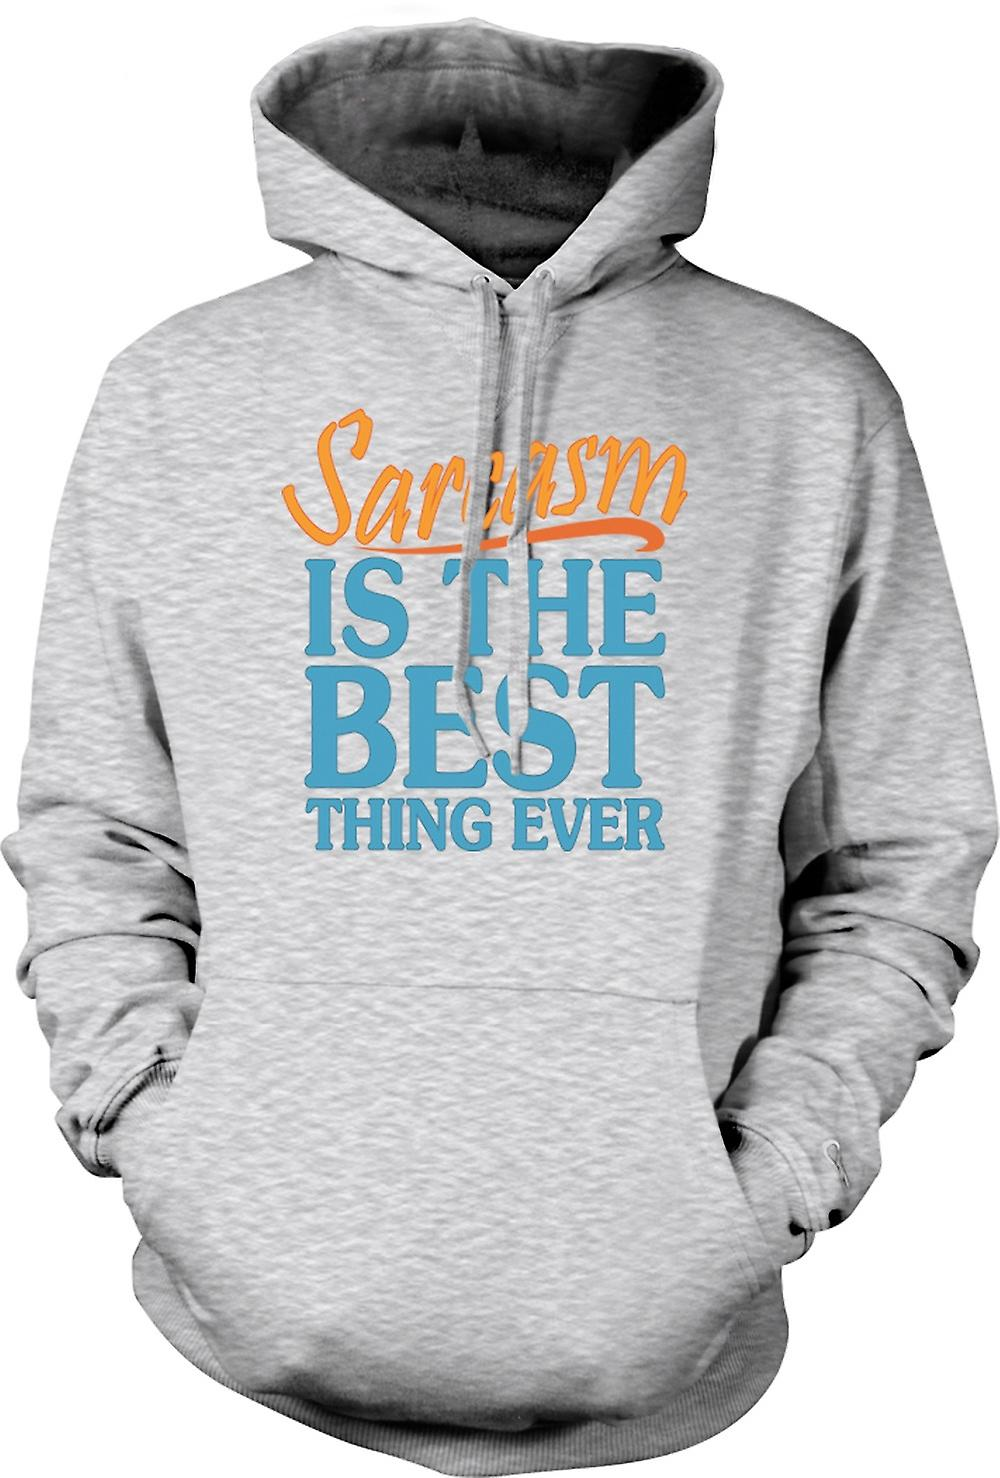 Mens Hoodie - Sarcasm Is The Best Thing Ever - Funny